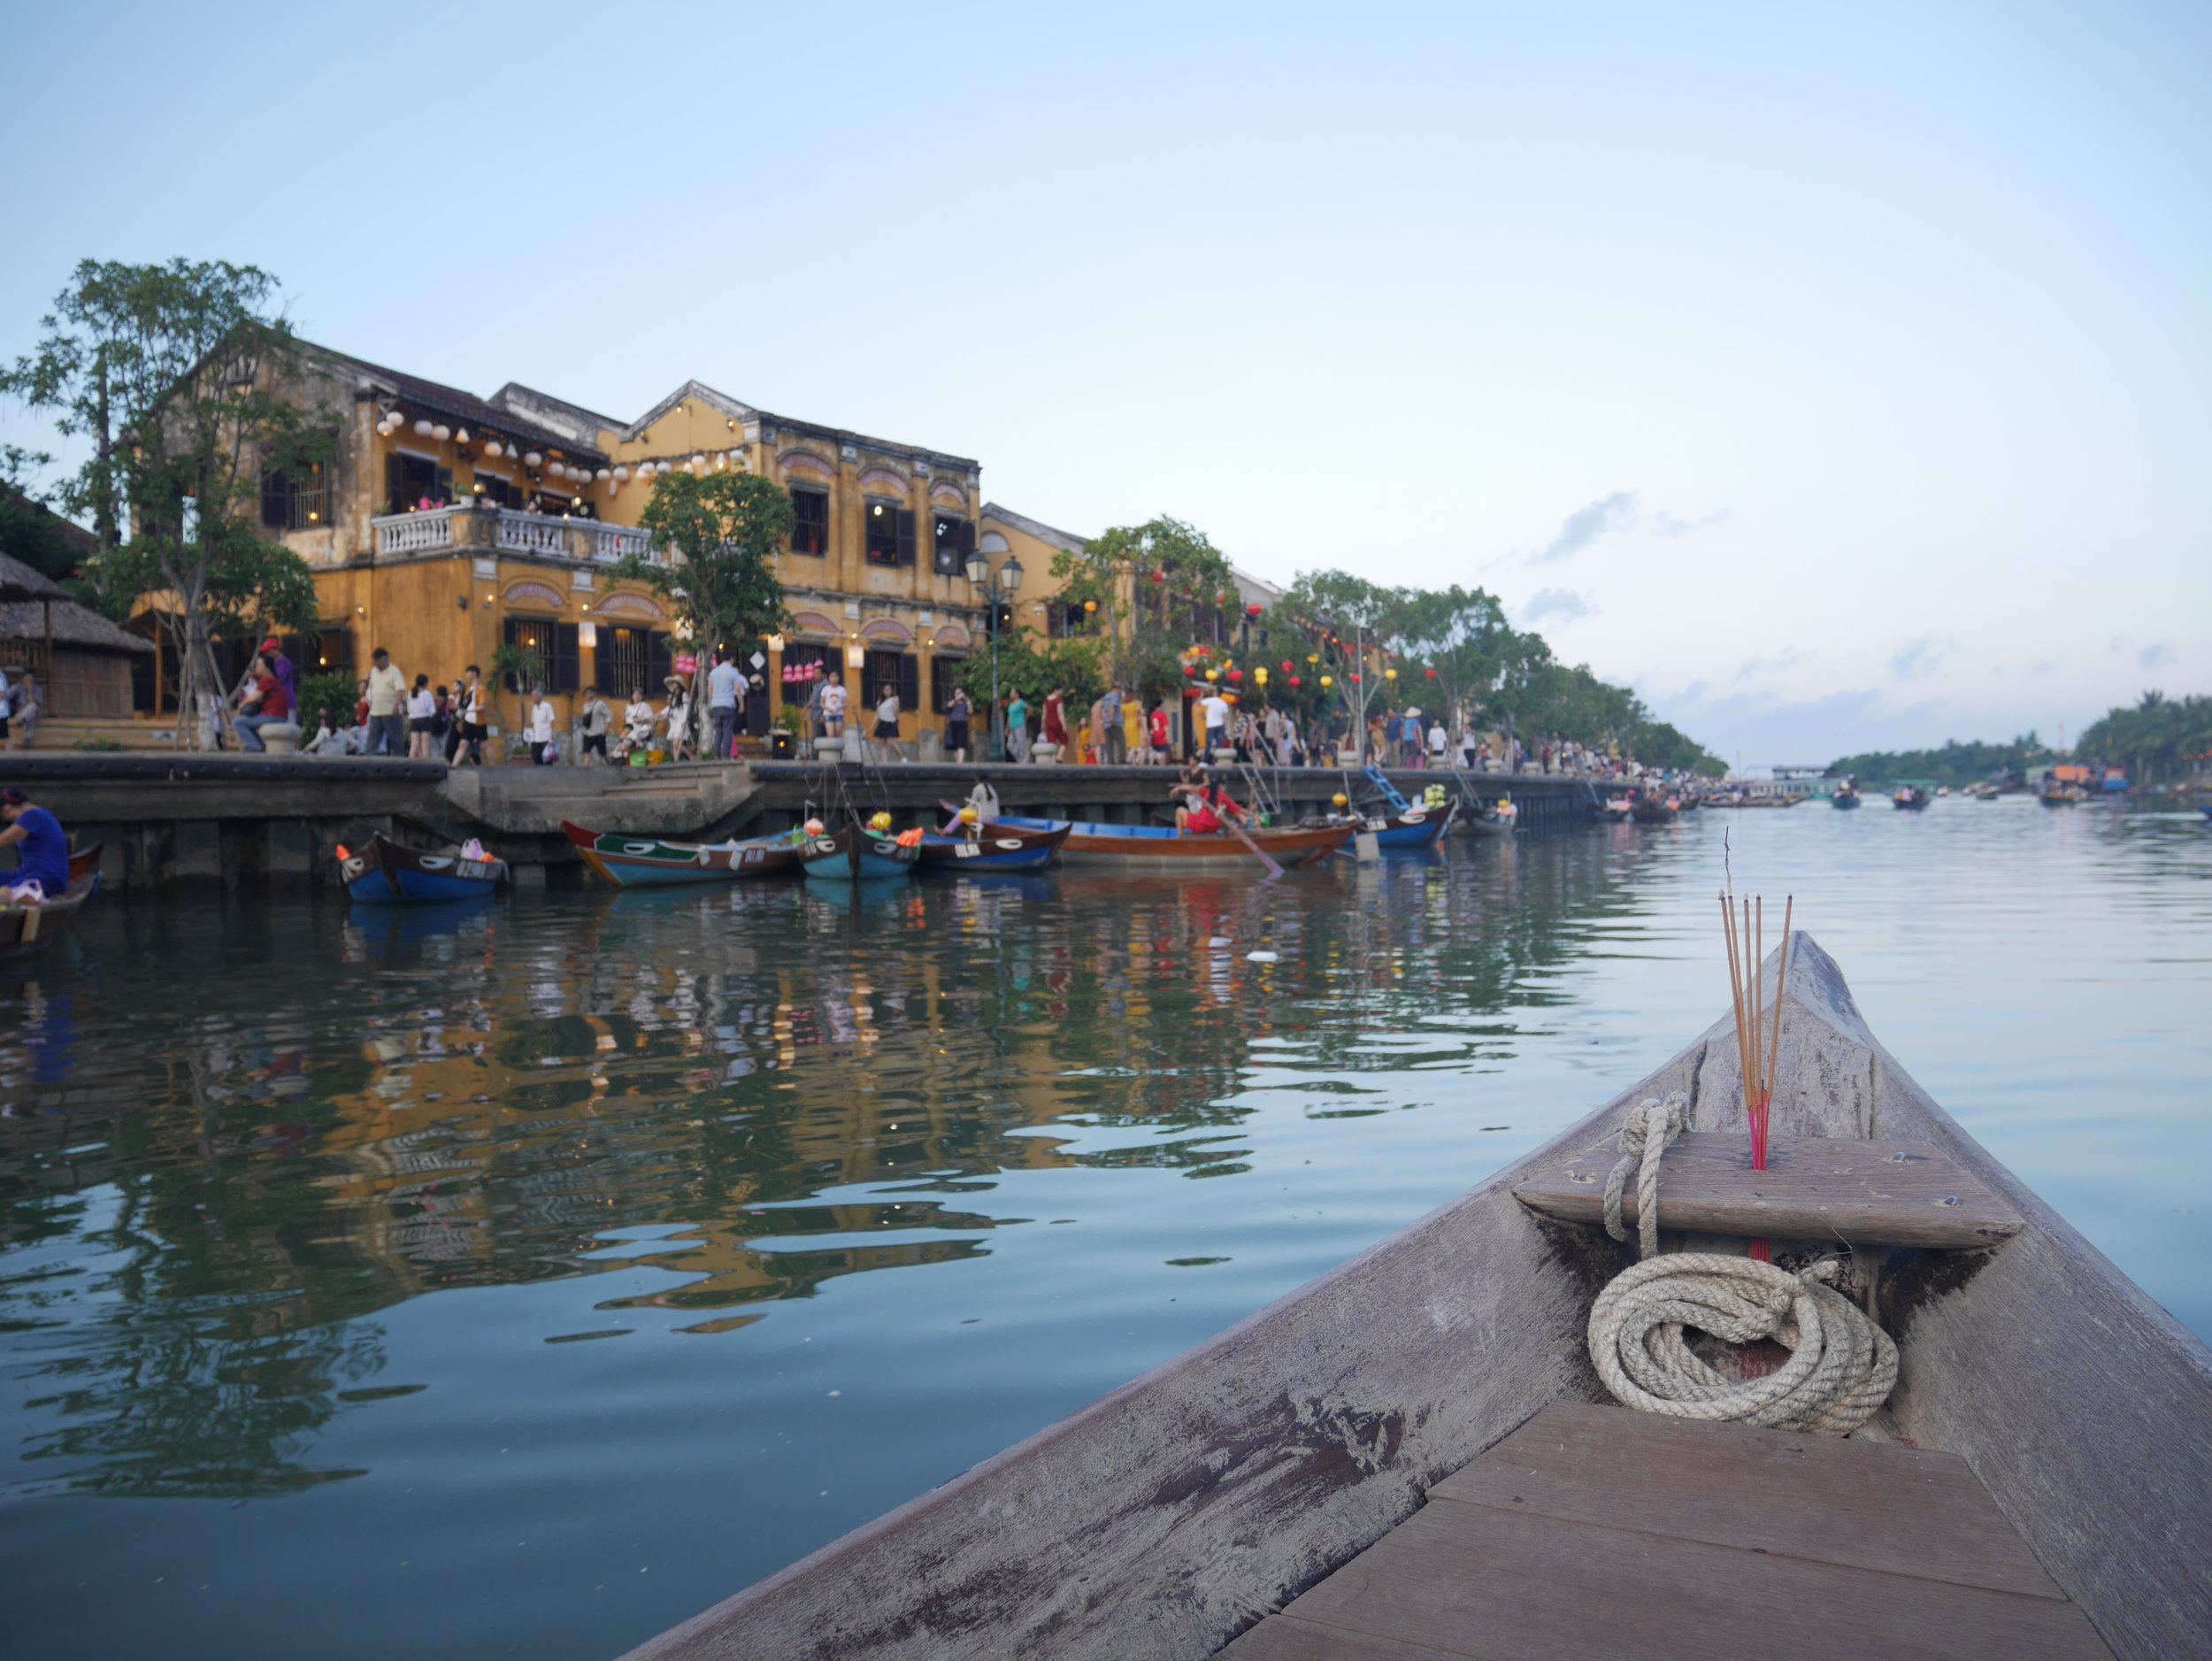 Sailing in the river of Hoi An for Lantern Festival